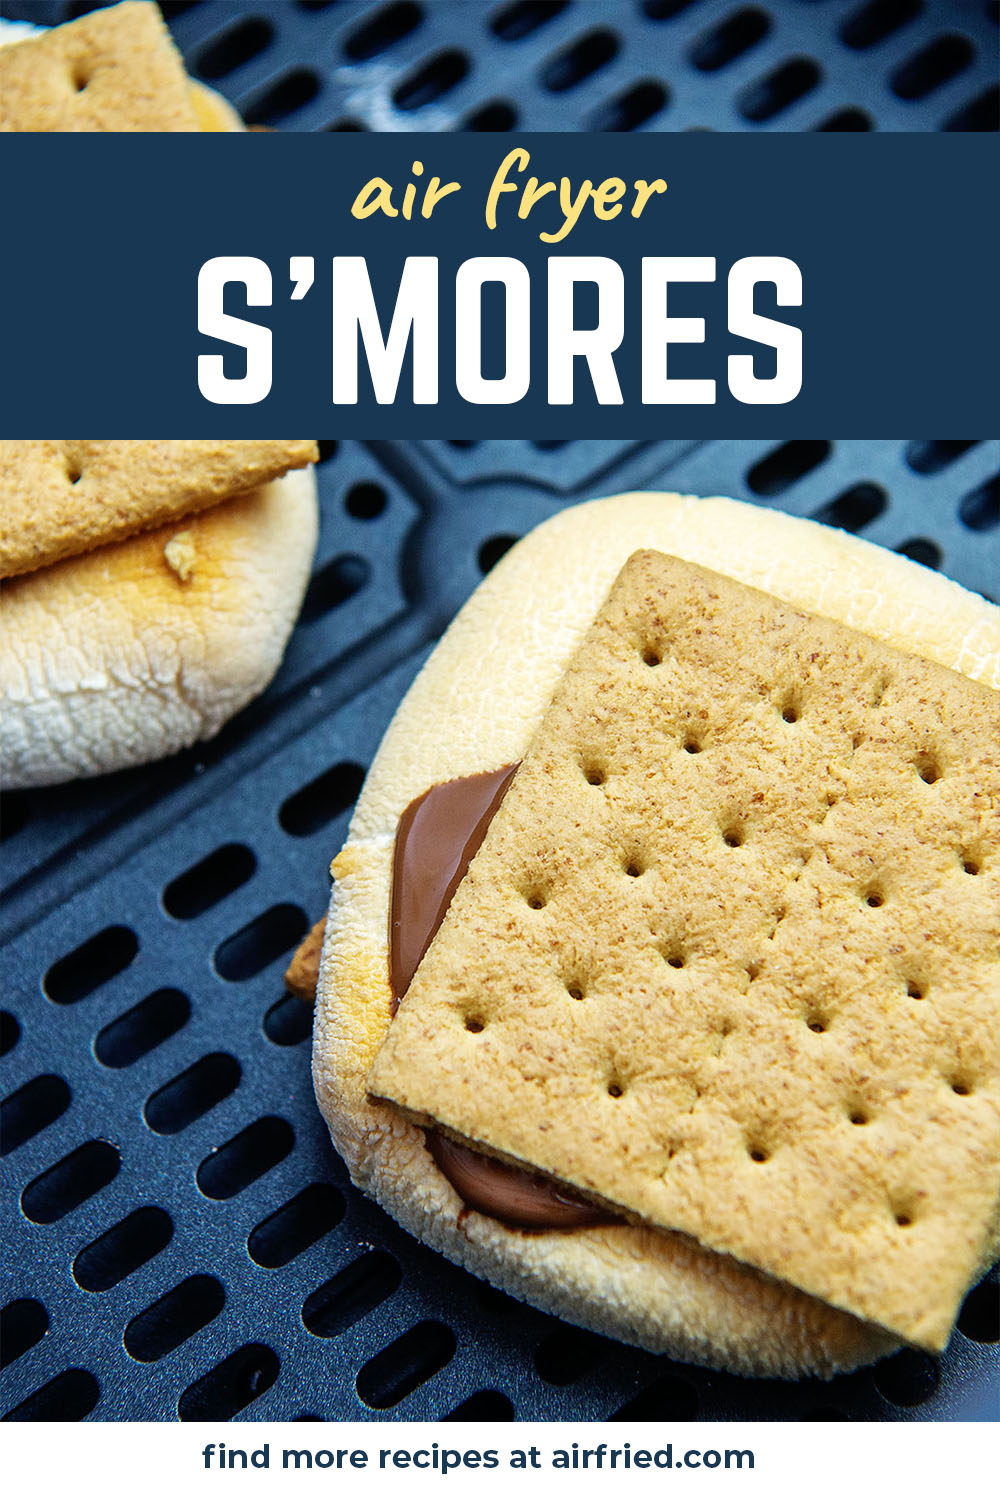 Try cooking your smores indoors next time you are making your favorite treat indoors.